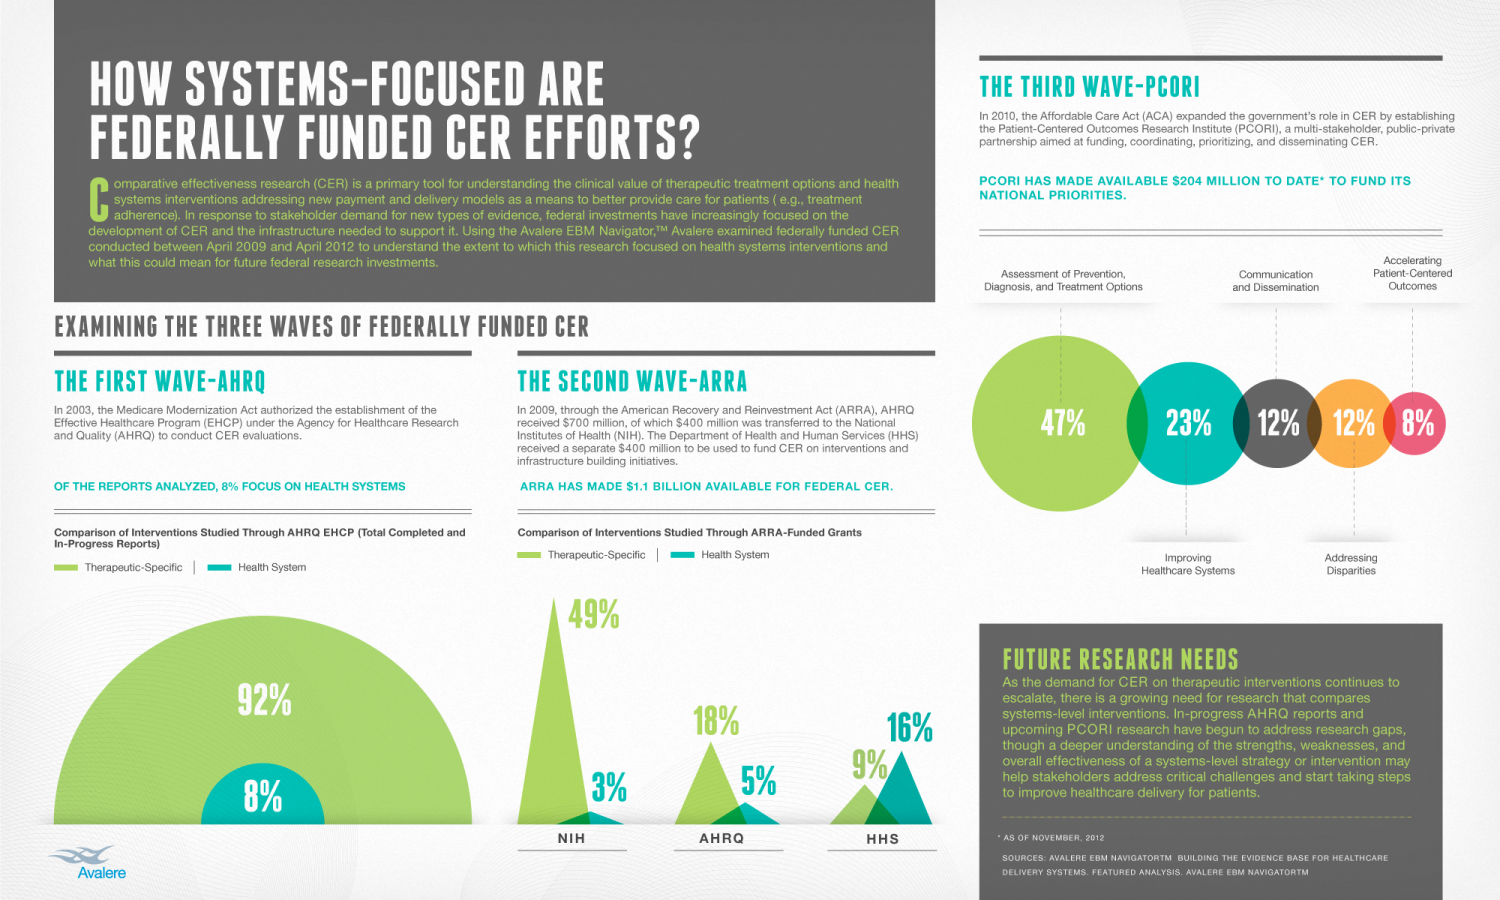 How Systems-Focused Are Federally Funded CER Efforts? Infographic